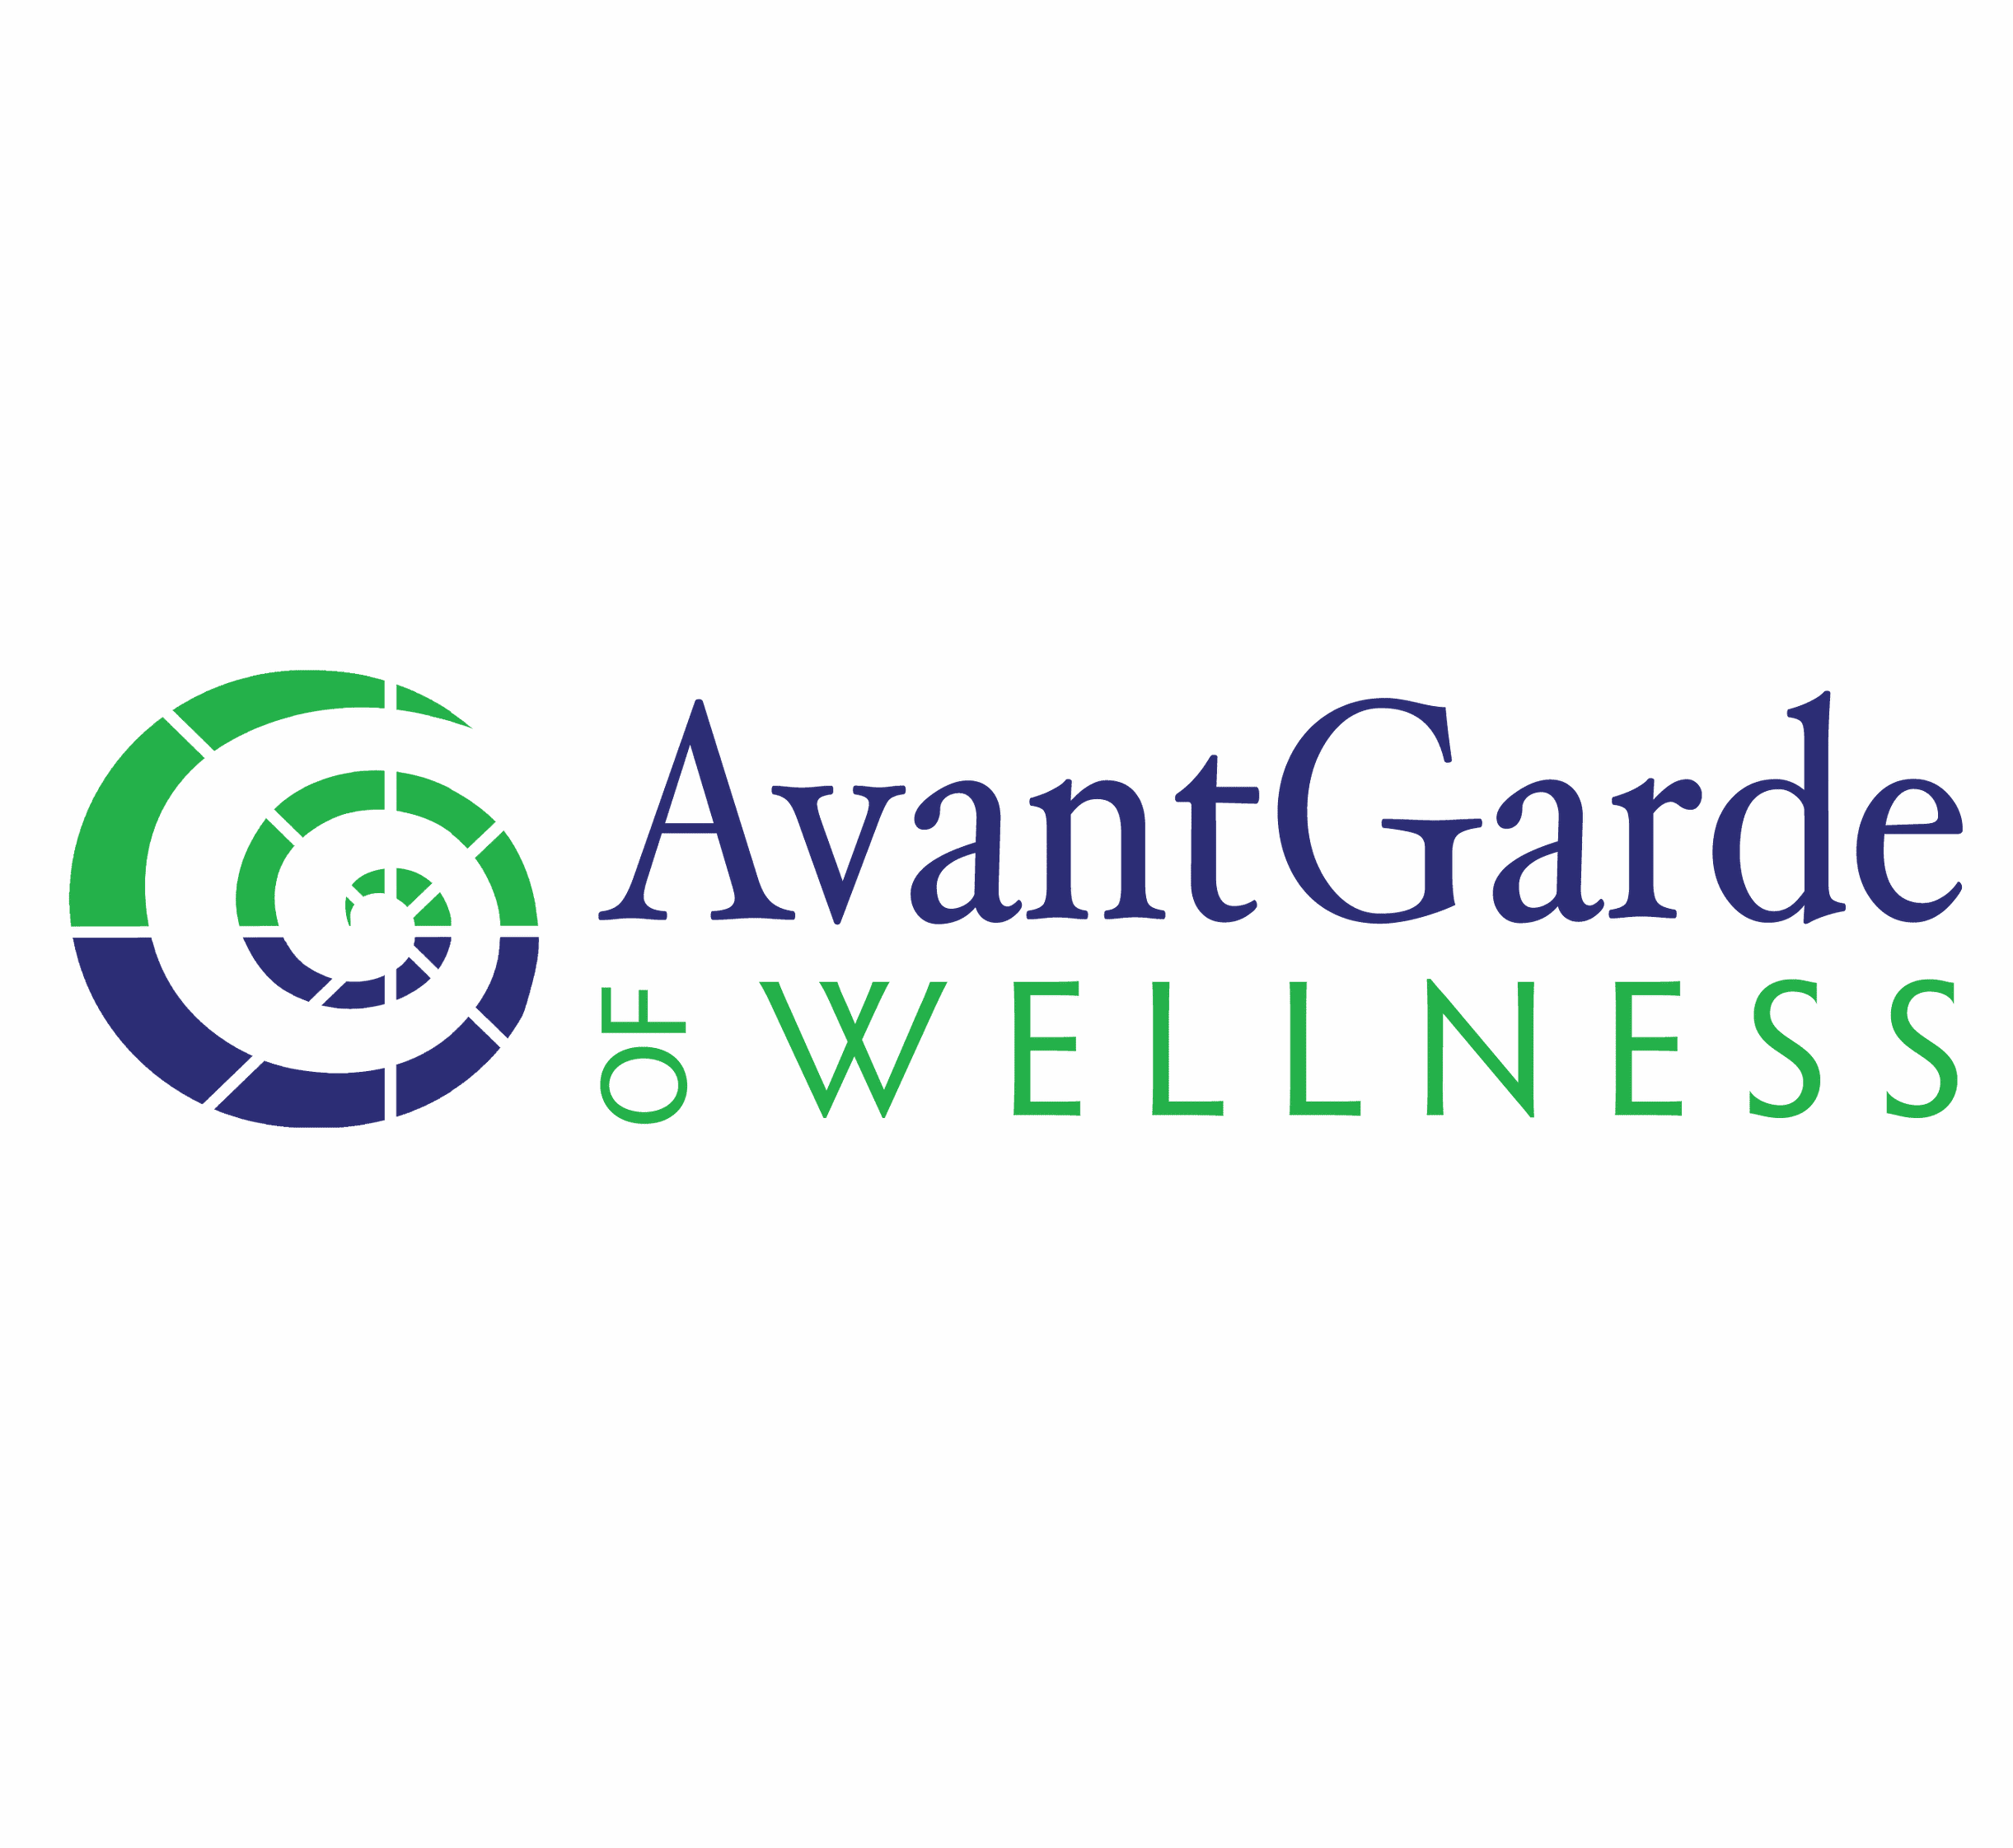 AvantGarde of Wellness, logo by New Paradigm graphic design, Santa Rosa, CA